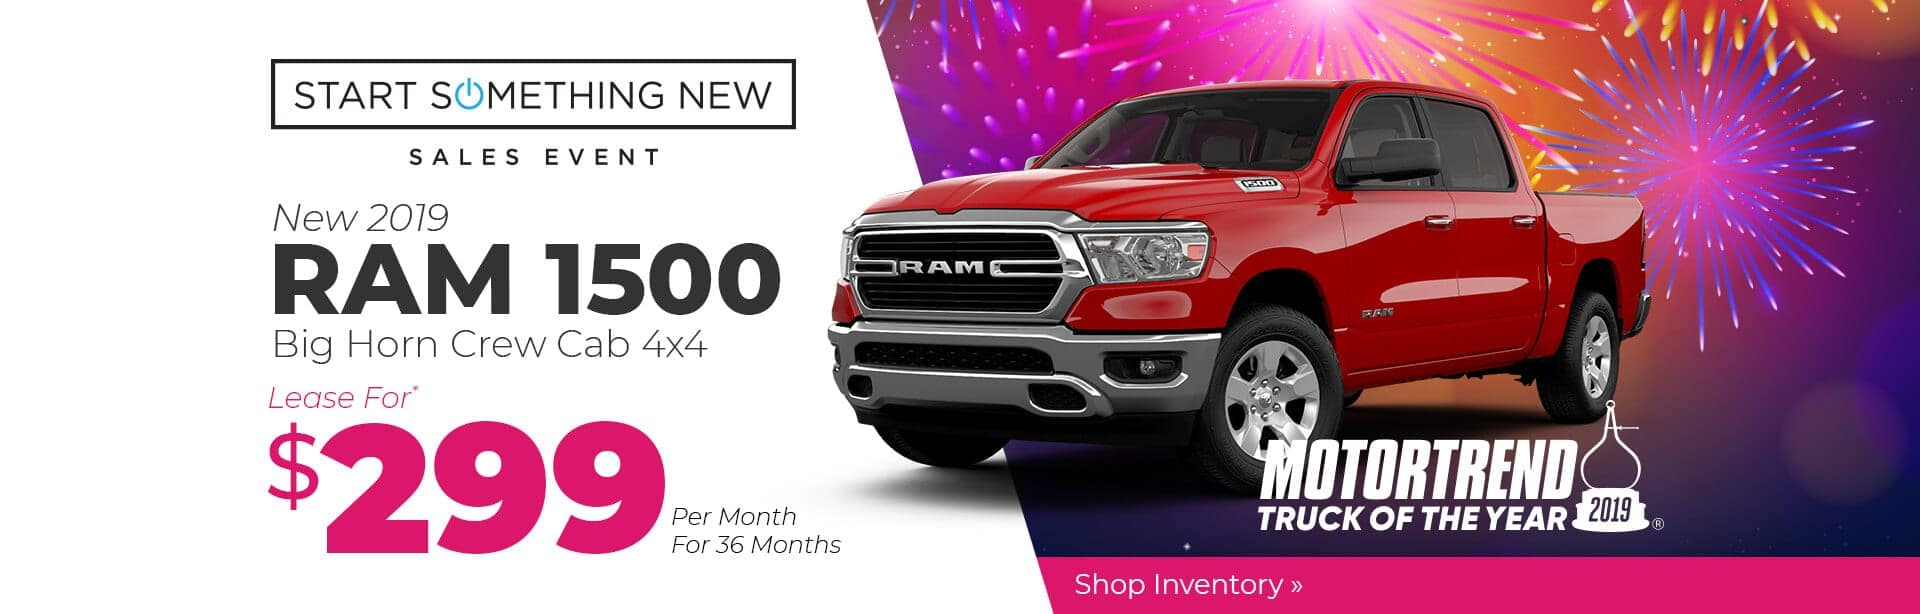 All-New RAM 1500 Lease Special near Terre Haute, Indiana.